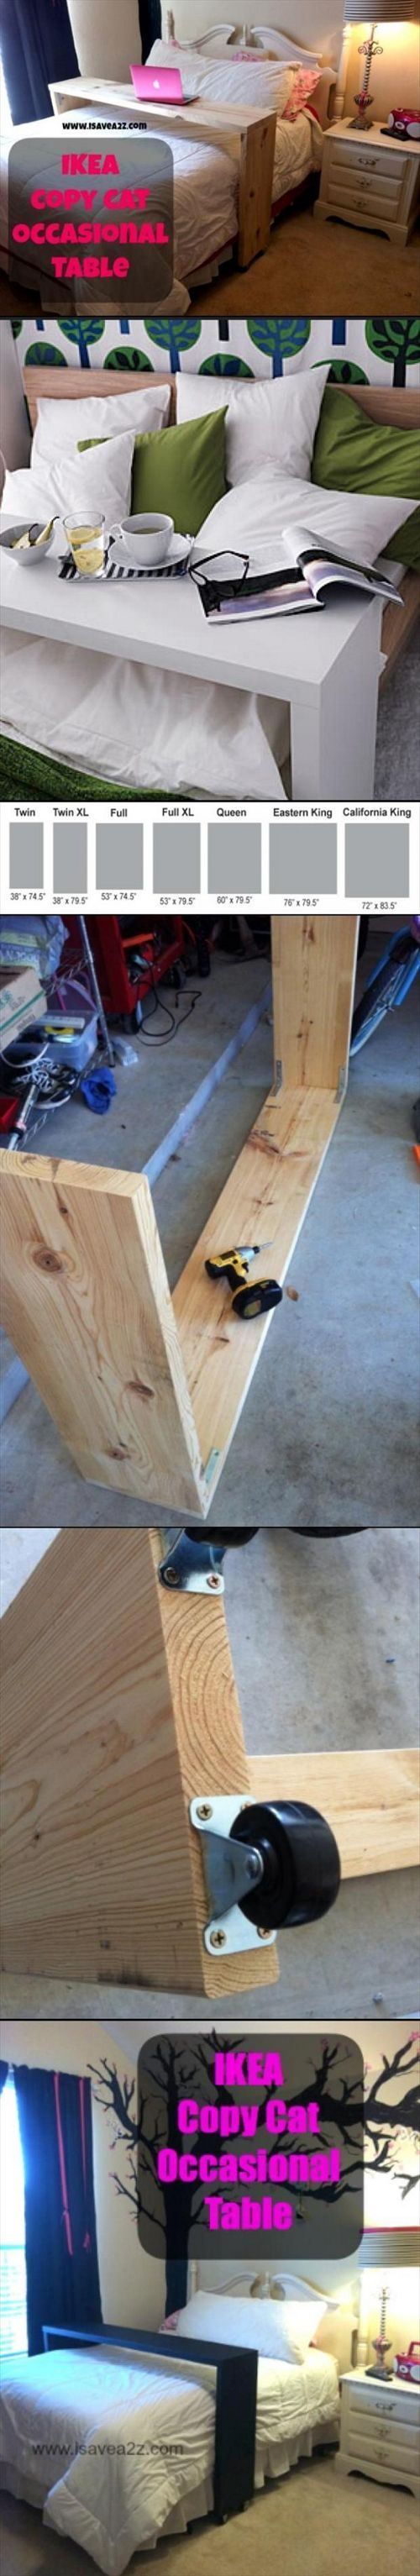 Some cool home improvement ideas (9)